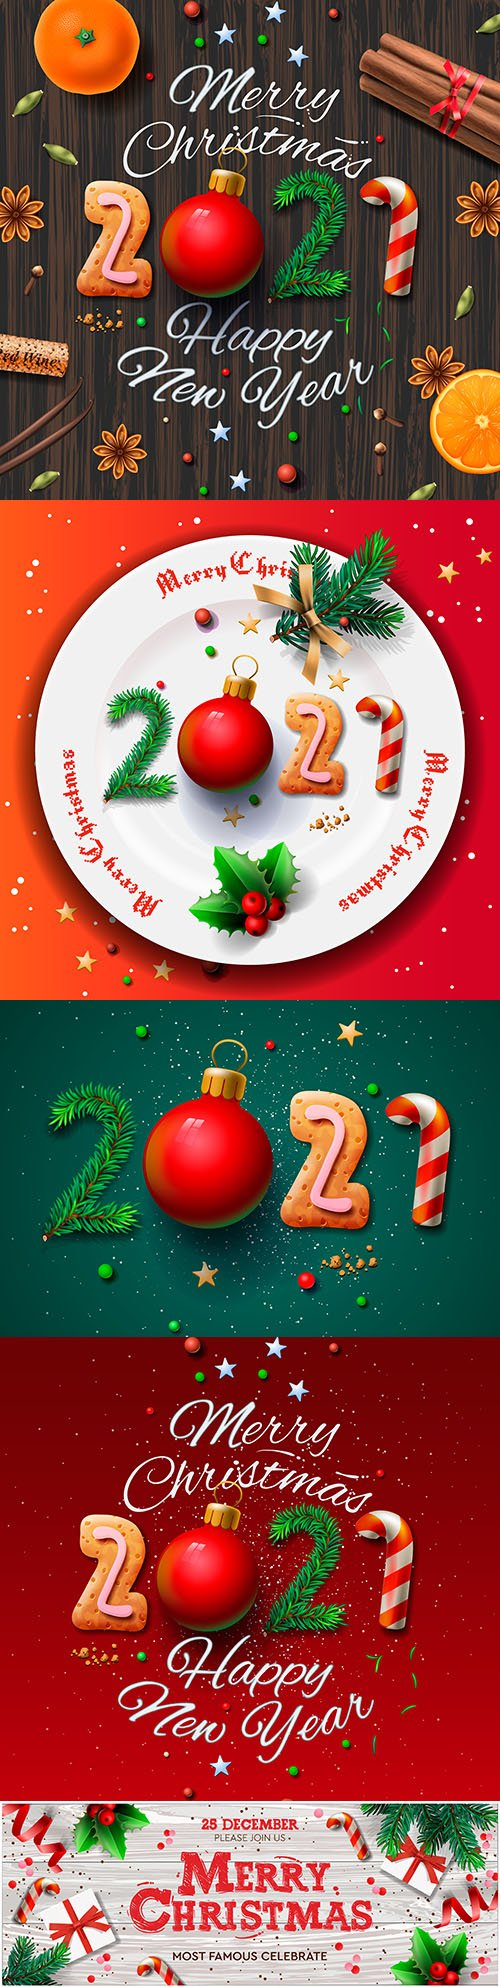 Greeting card for Christmas and New Year 2021